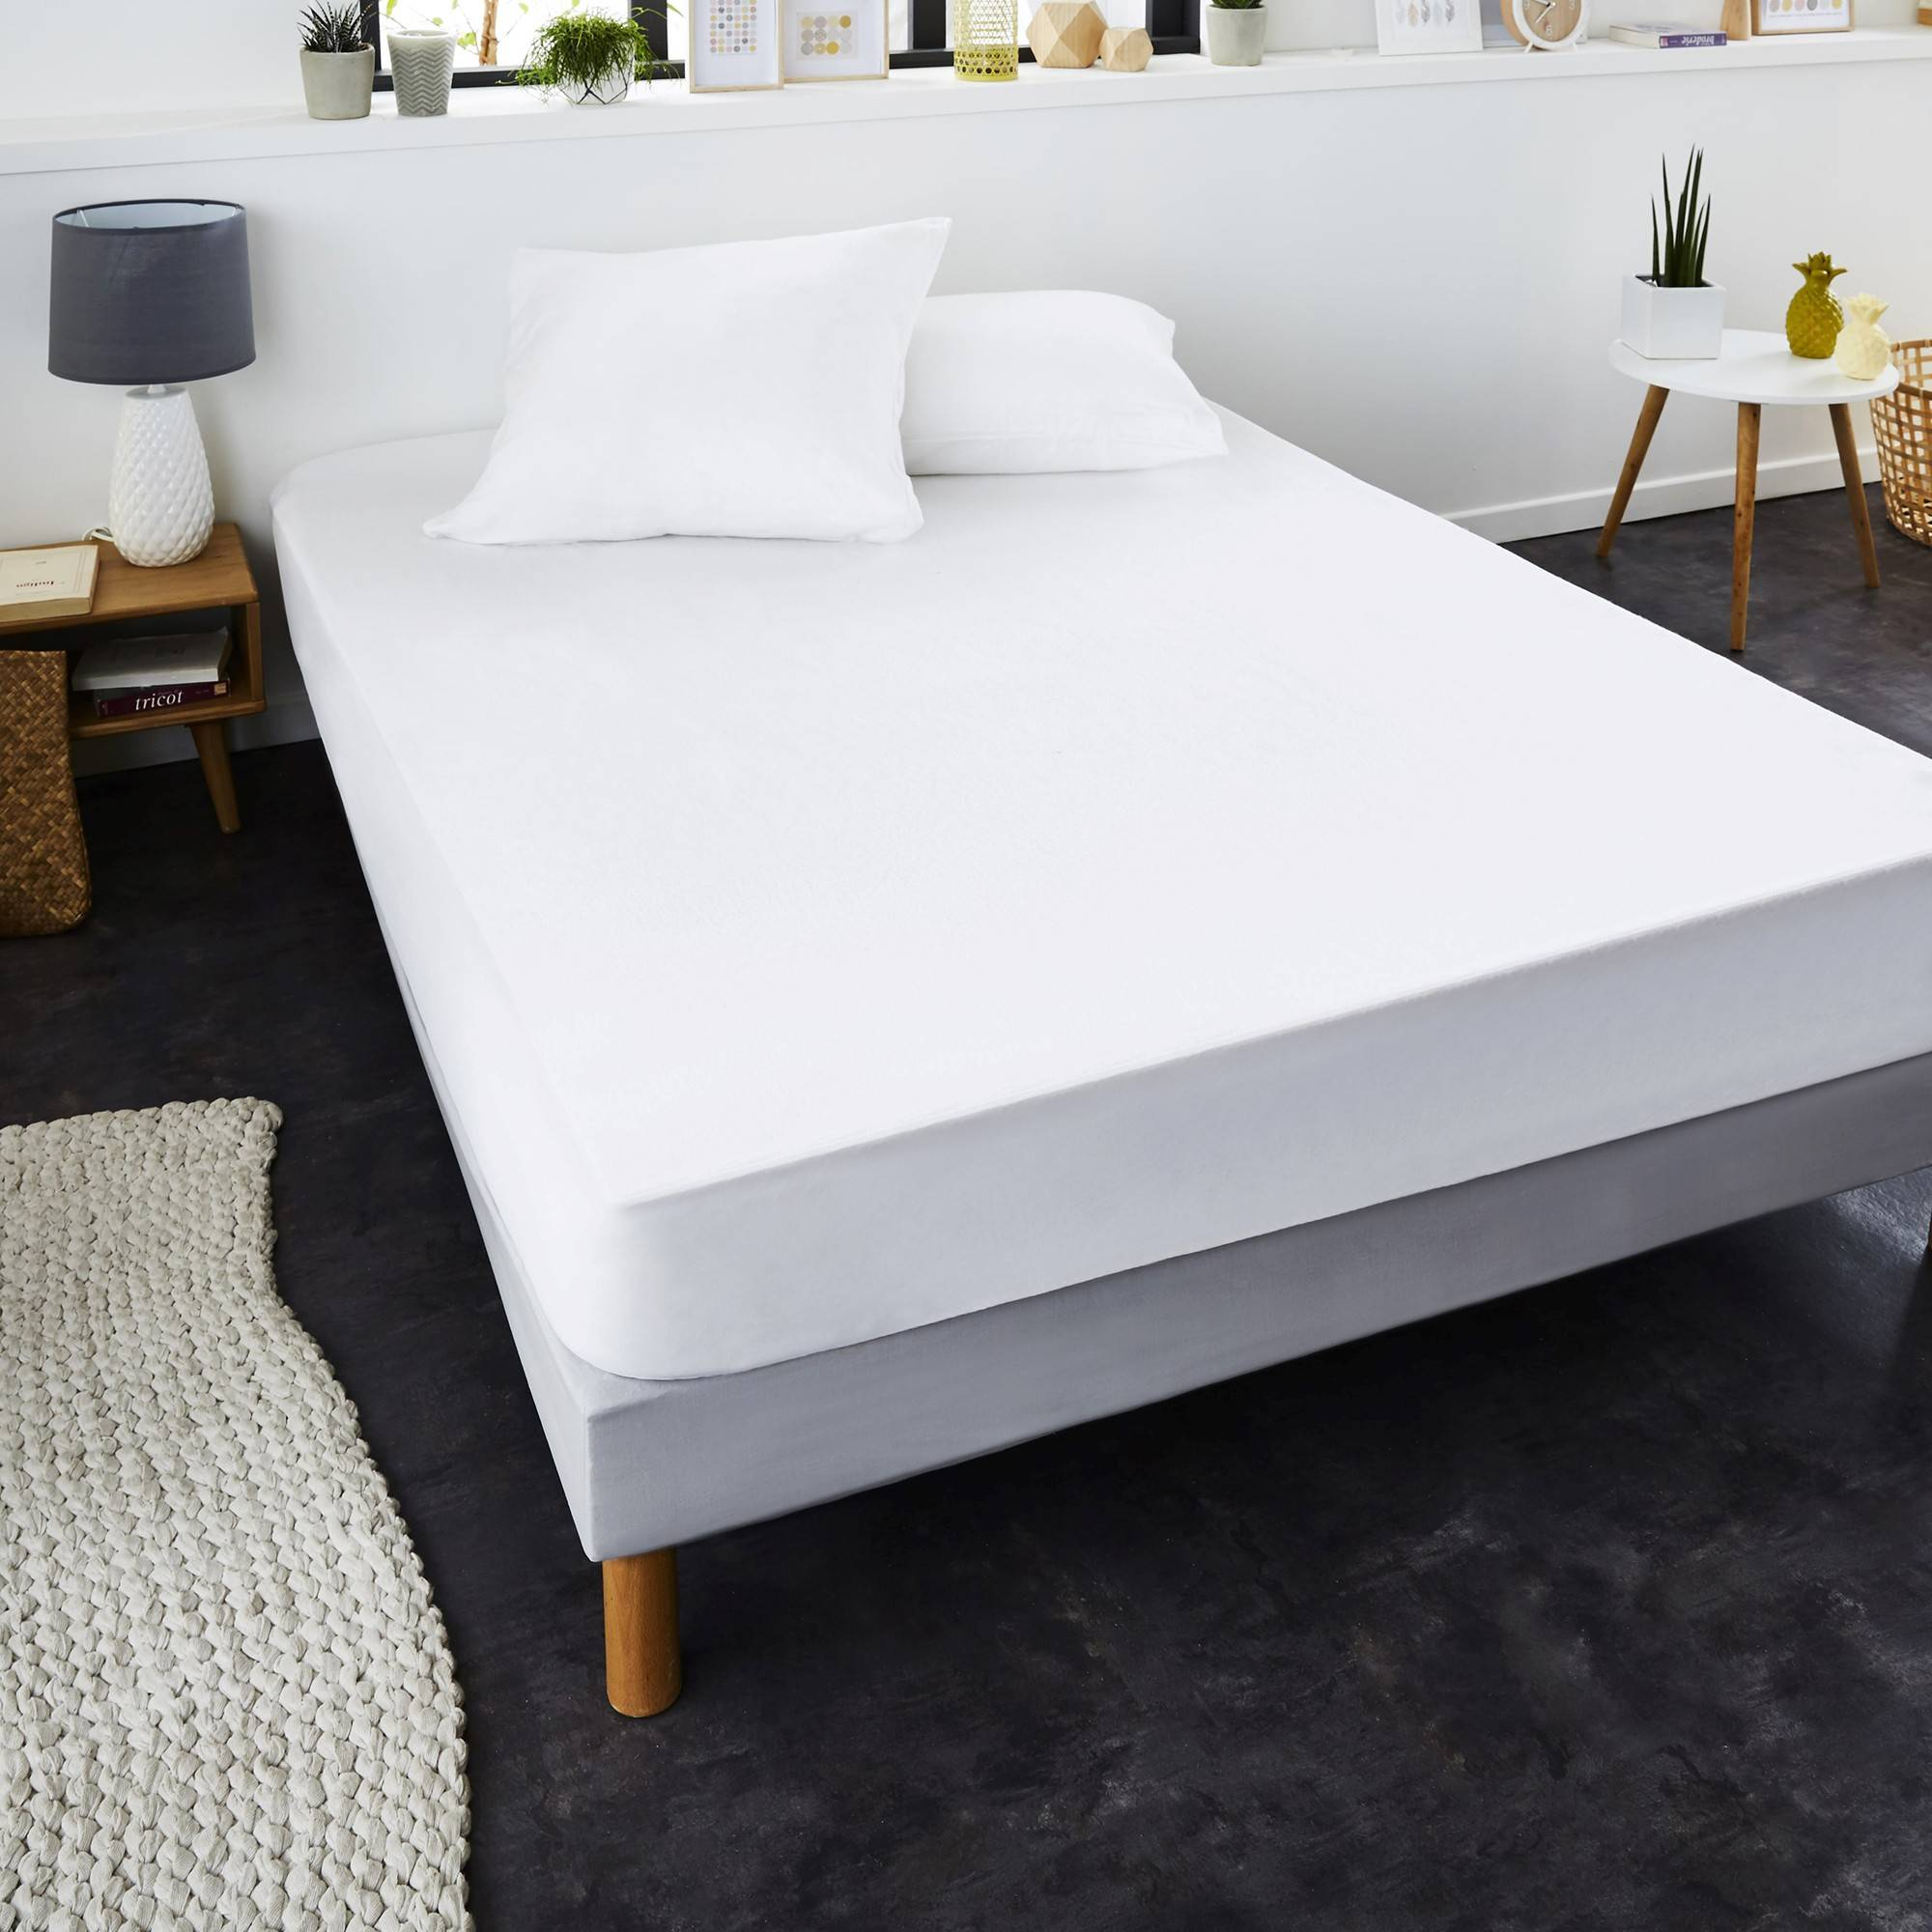 Protège Matelas2 pers 140x200cm - Blanc Protège-matelas anti-acariens Greenfirst® molleton absorbant - Blancheporte